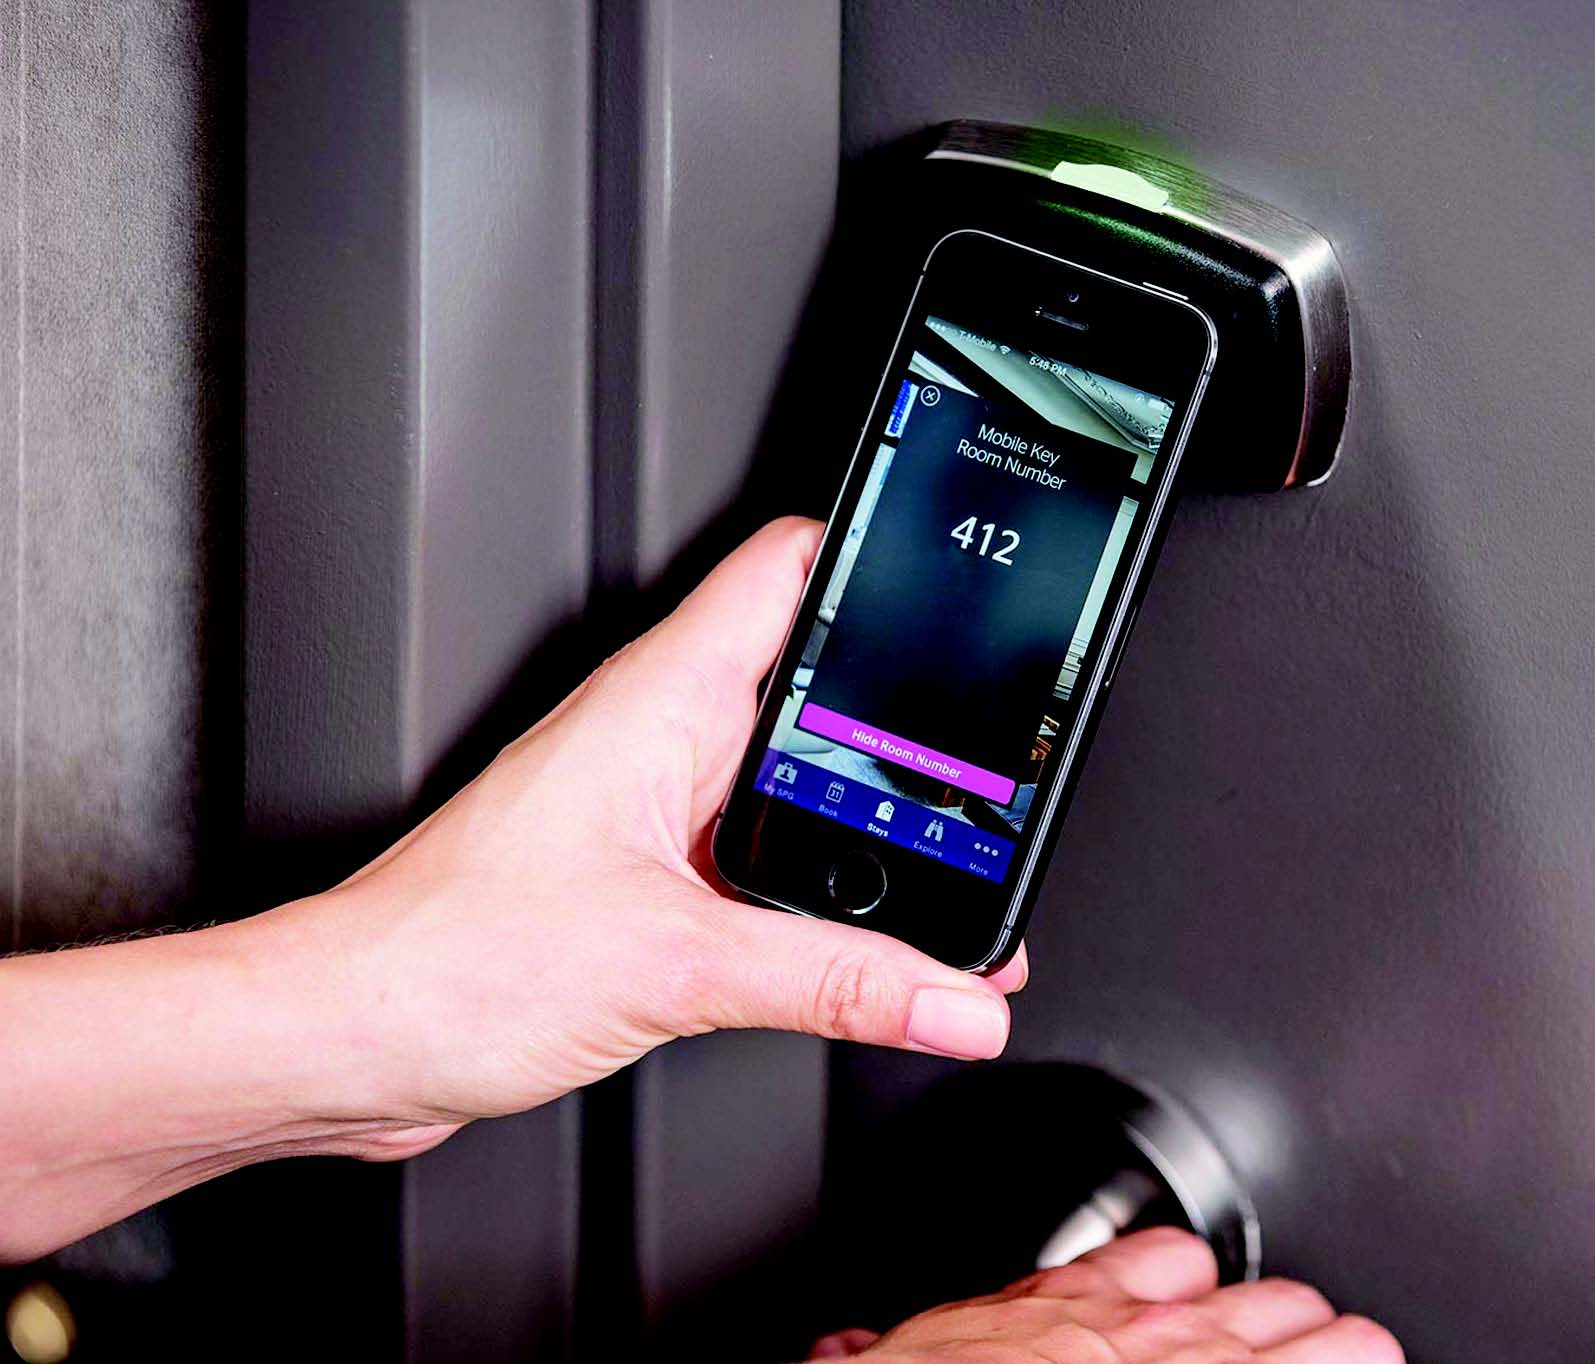 Hospitality Biz India :: In-room Hotel Technology - Getting